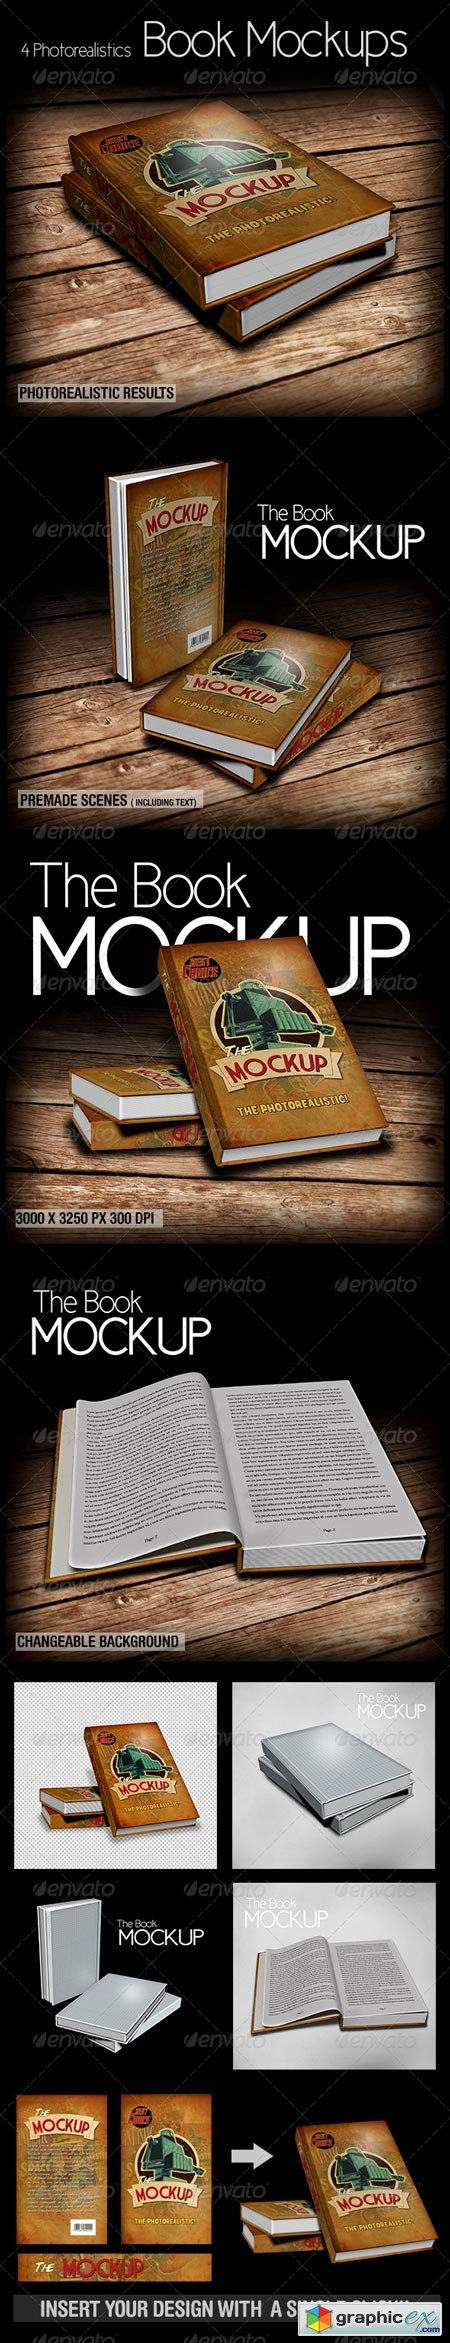 The Book Mockup 6077778